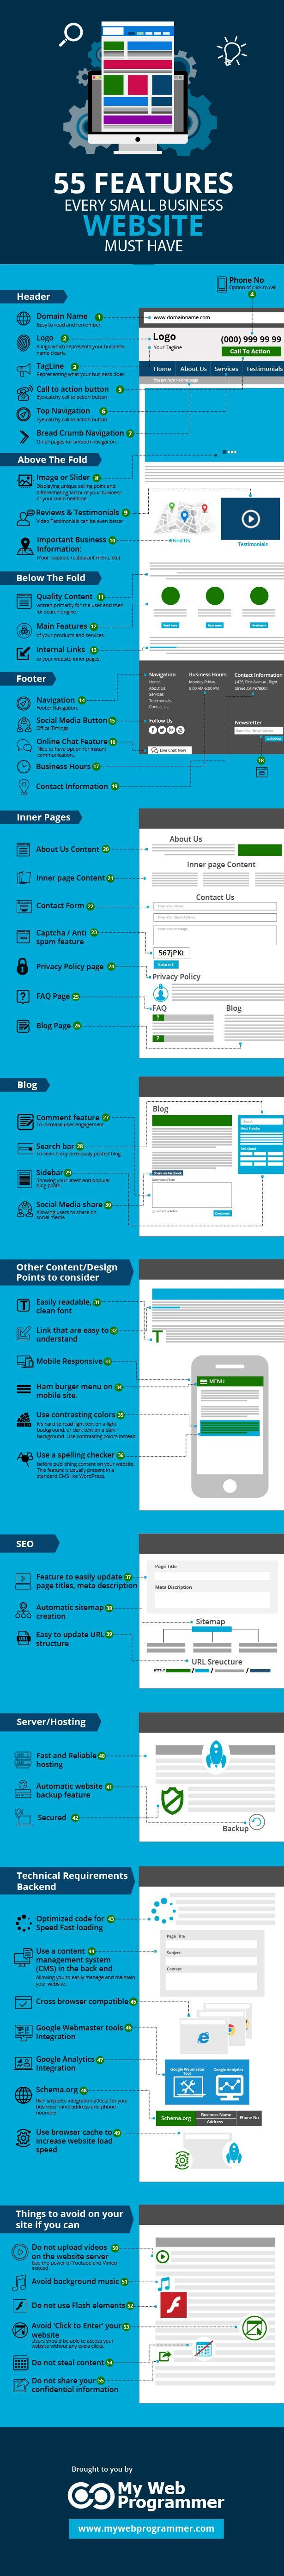 55 Features for a Successful Small Business Website - /redwebdesign/